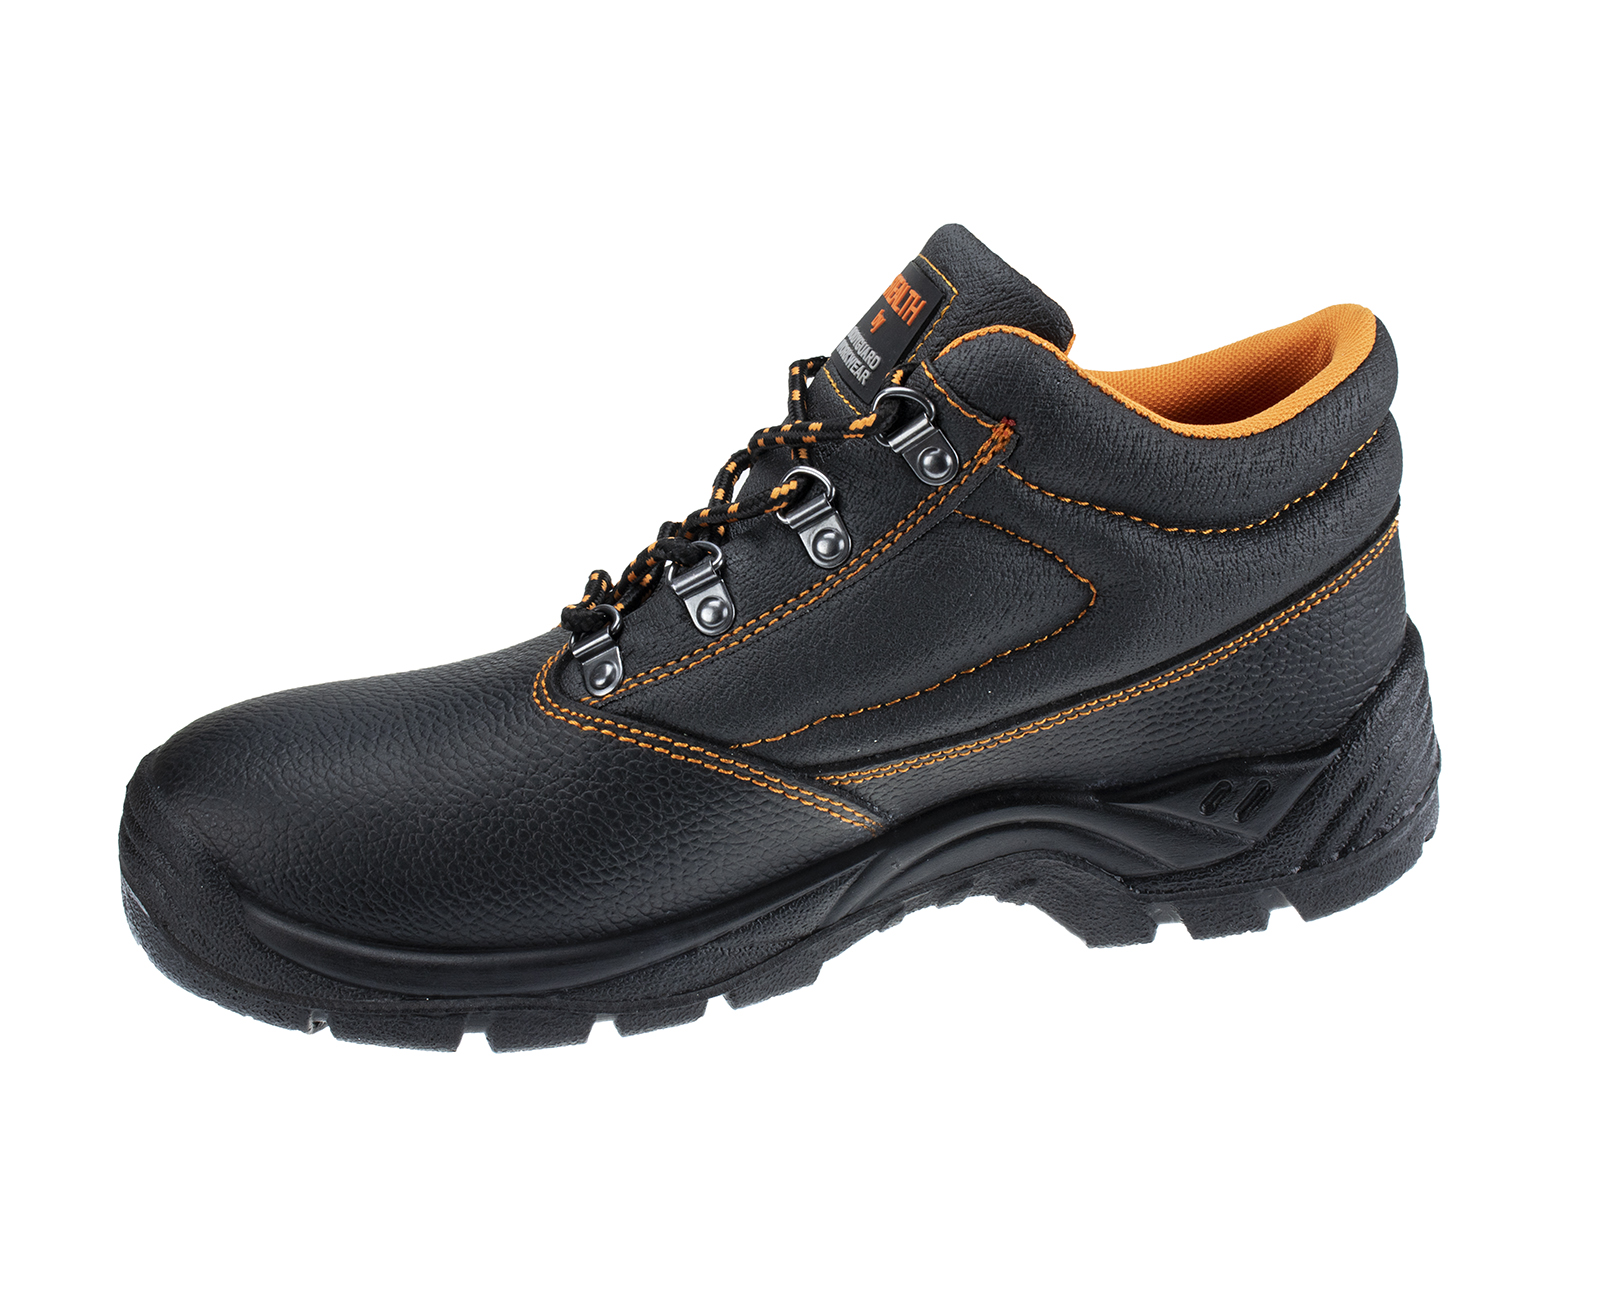 Stealth Leather Safety Boot w/ Padded collar & Dual density PU Sole  - 2